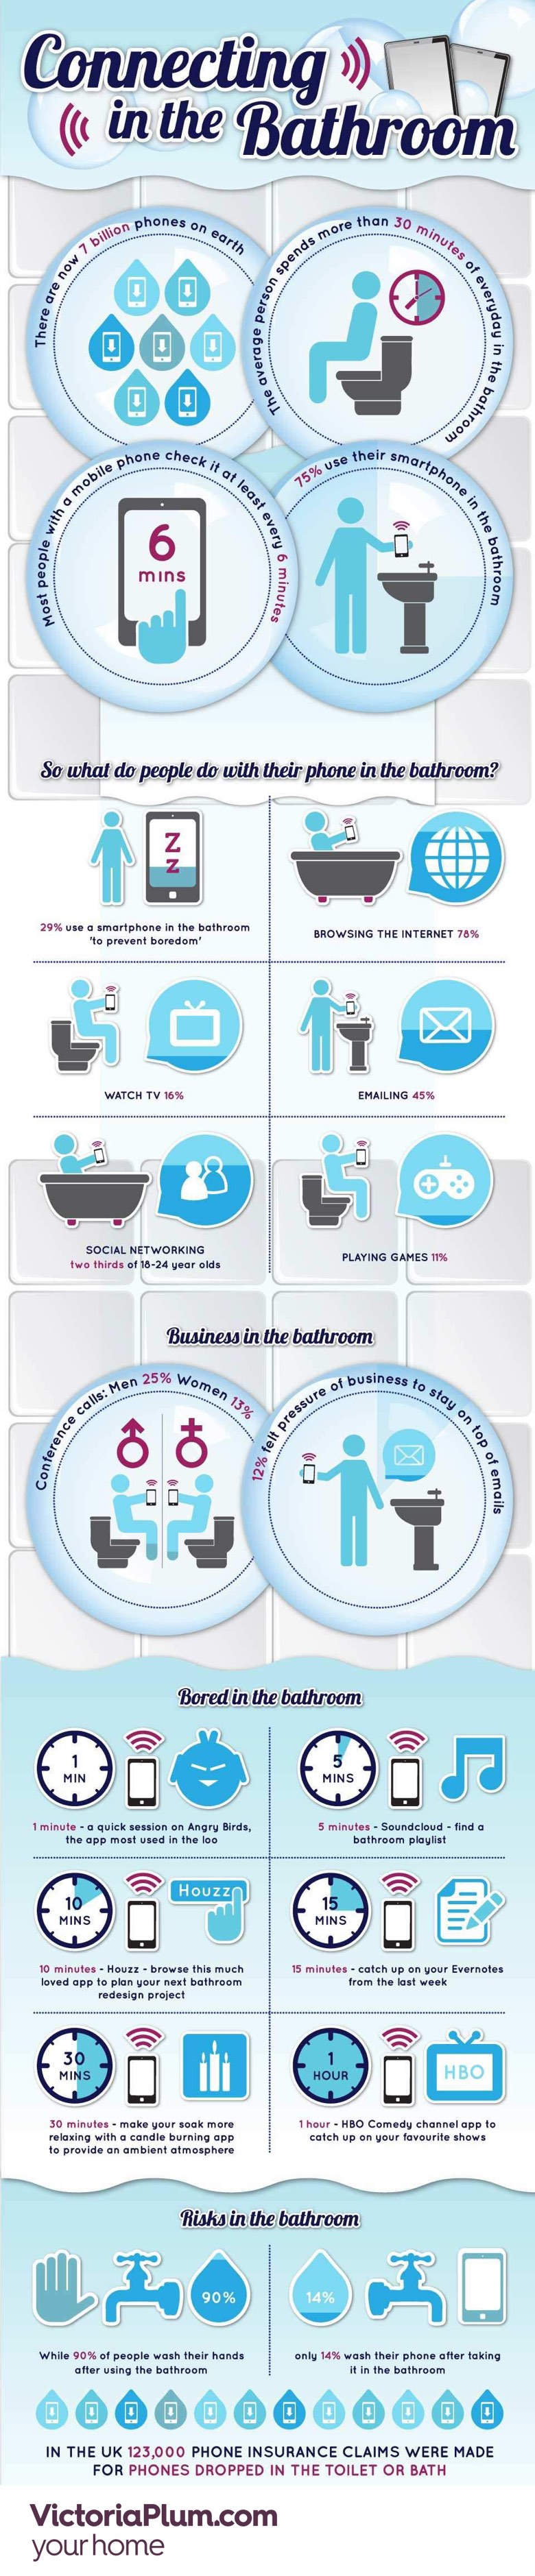 Connecting in the Bathroom Infographic